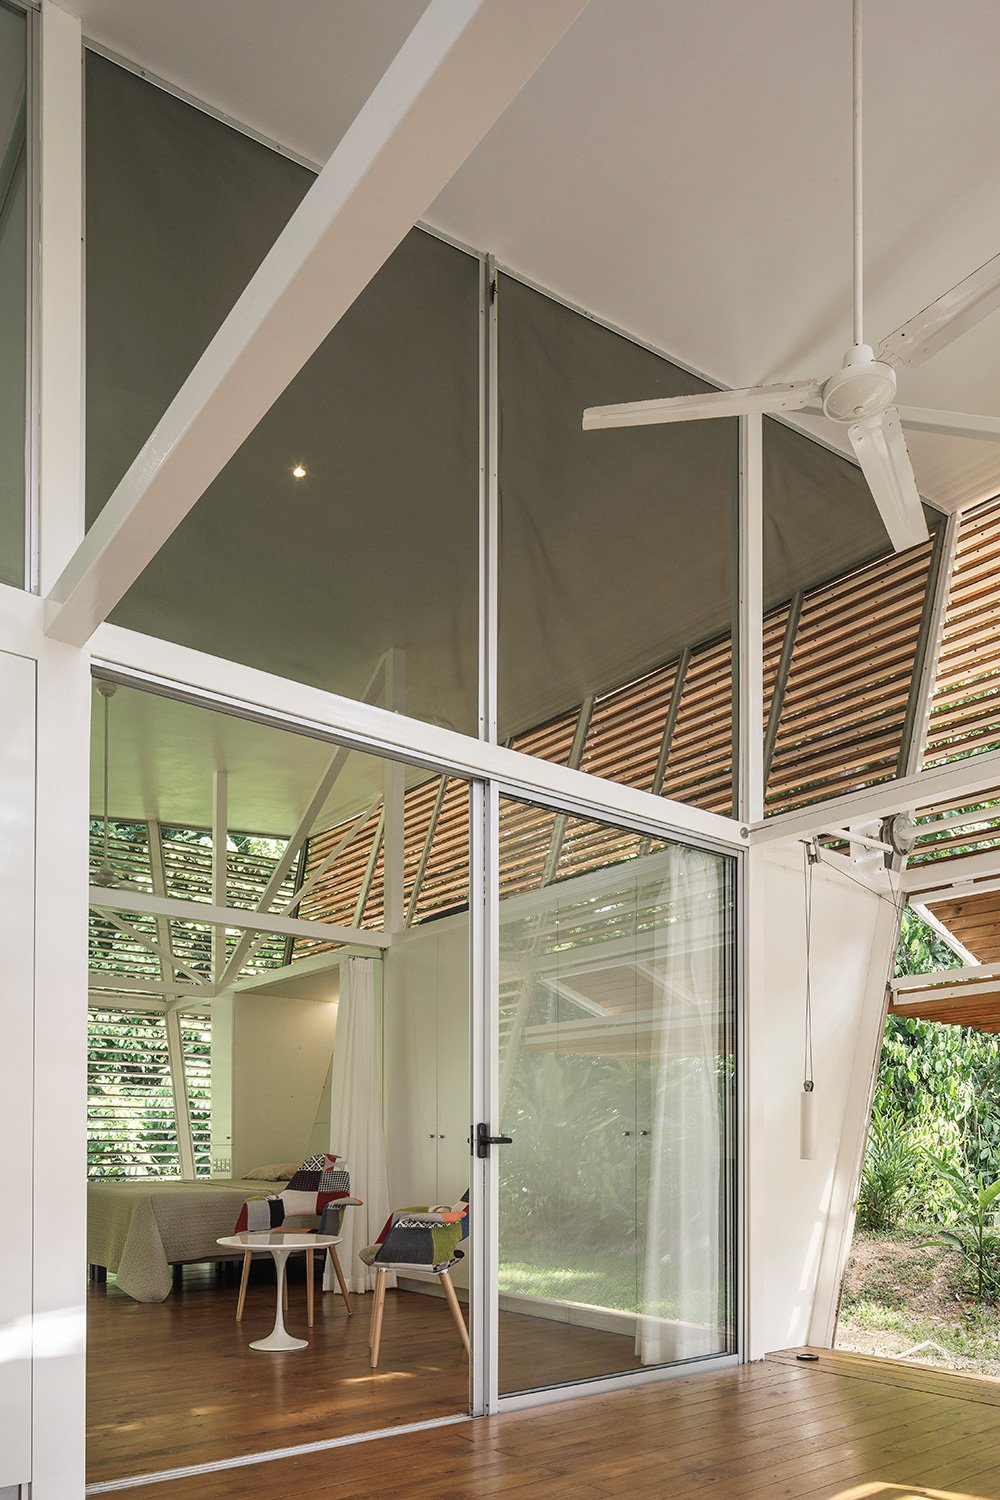 According to the wishes of the client, the house in Ojochal was built as a steel structure with wooden finishes. Fernando Alda